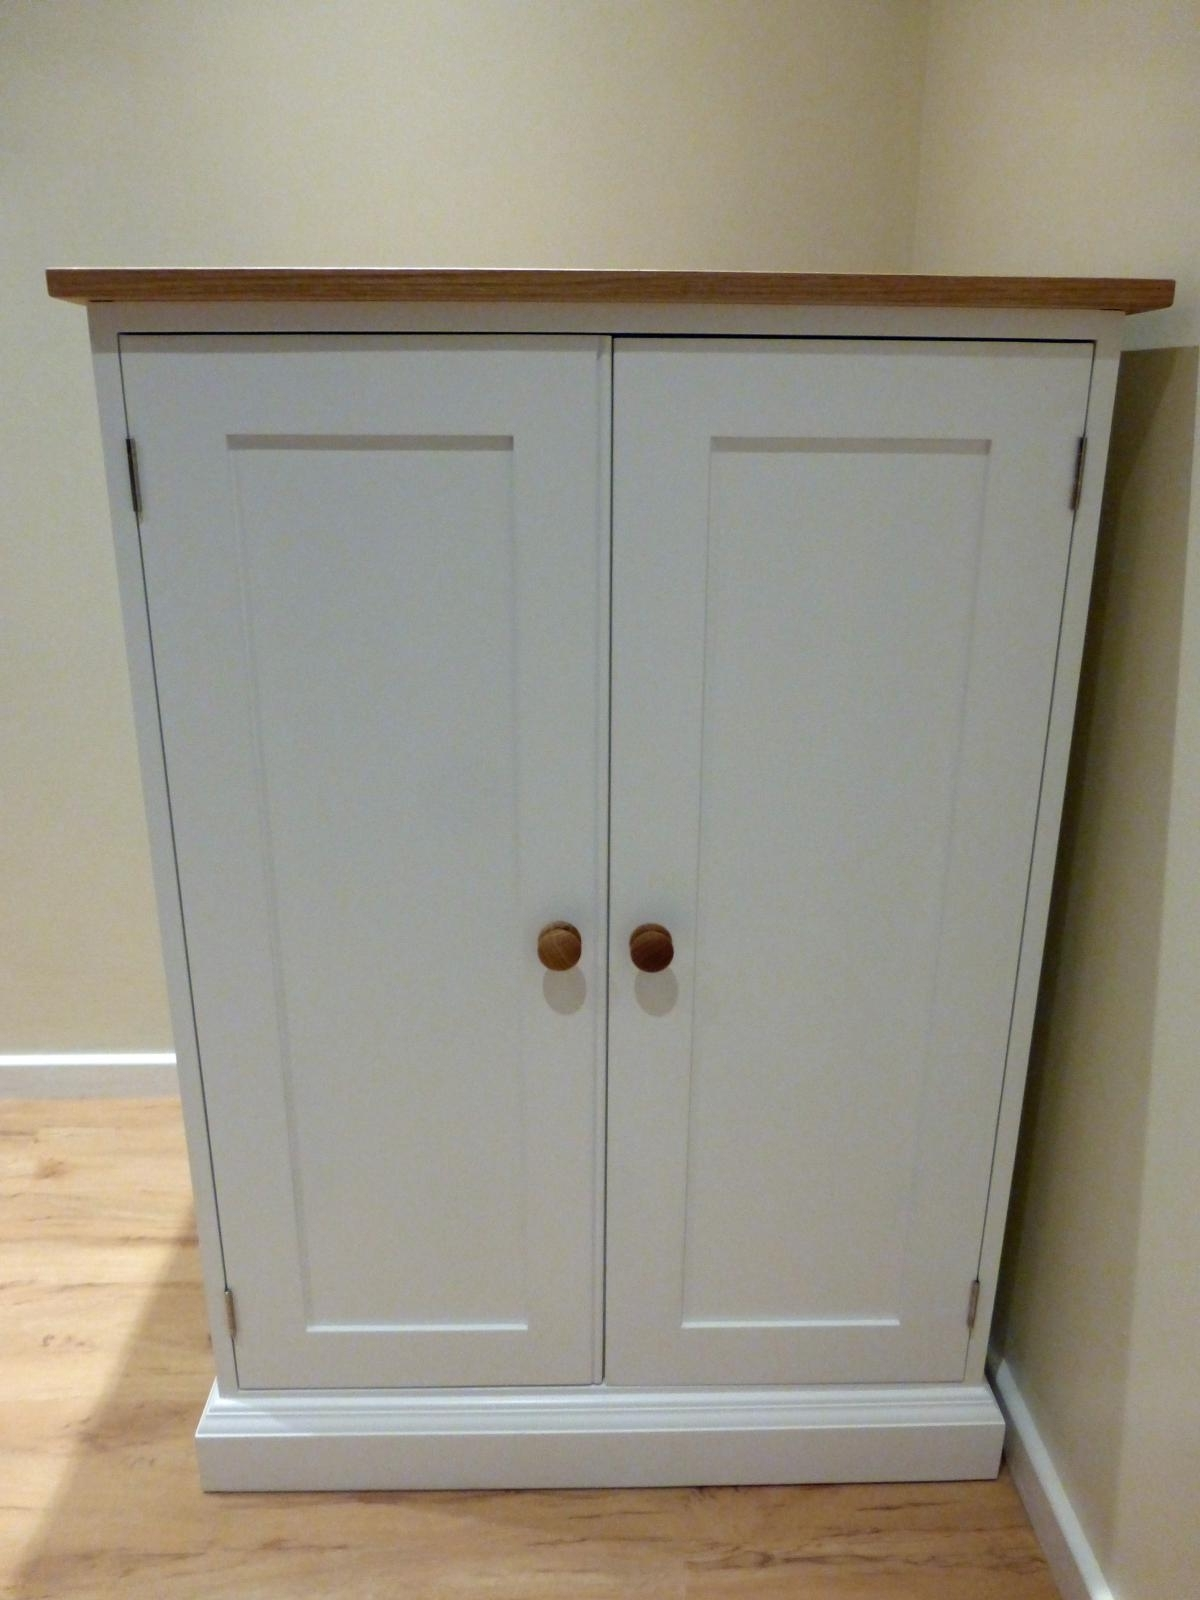 Bespoke Cupboard Within Famous Tumble Dryer Cupboard – Bespoke Kitchen And Dining Room Furniture (View 4 of 15)